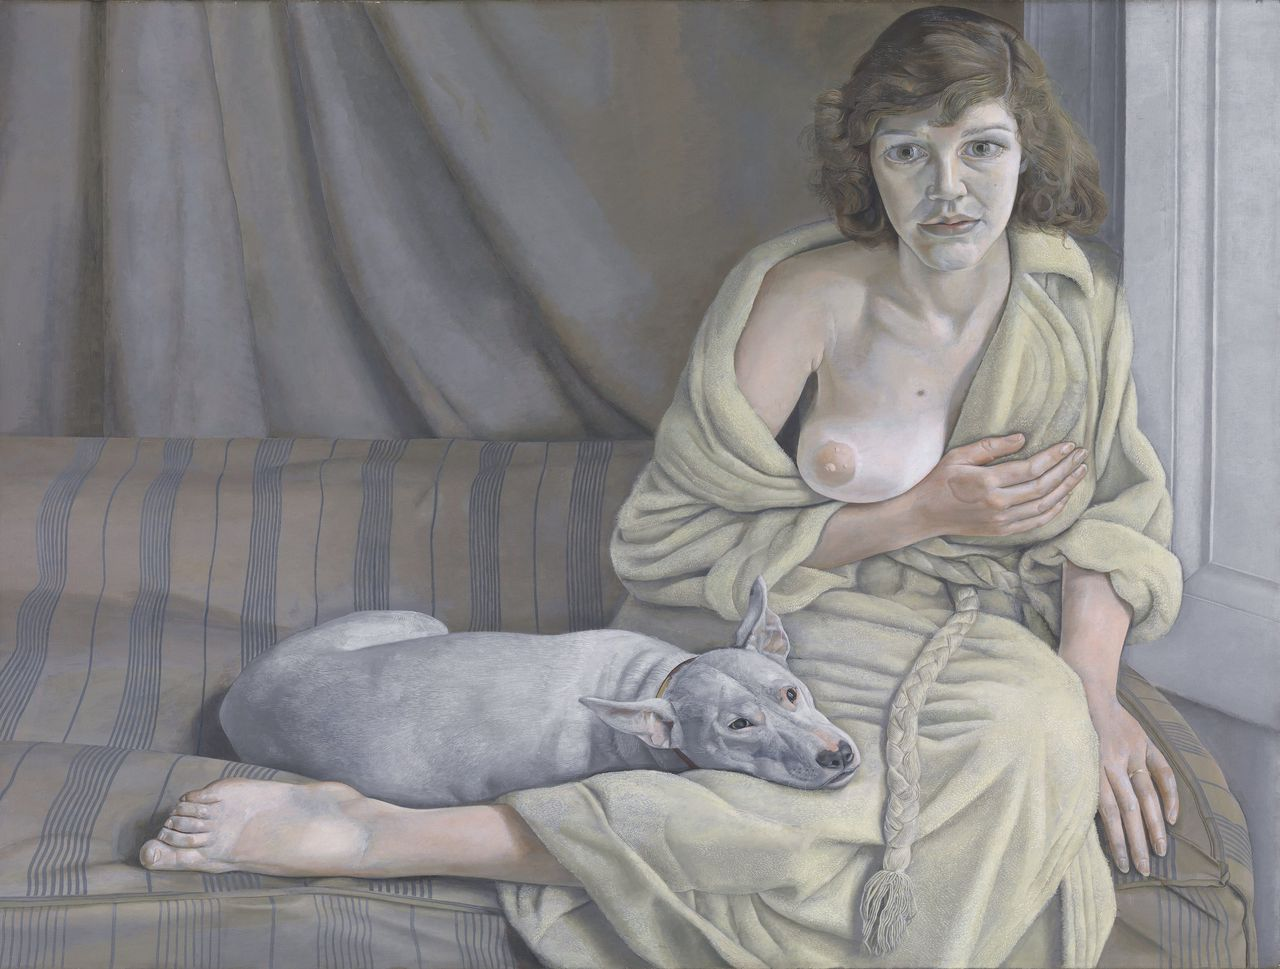 Lucian Freud, Girl With a White Dog (1950-'1)